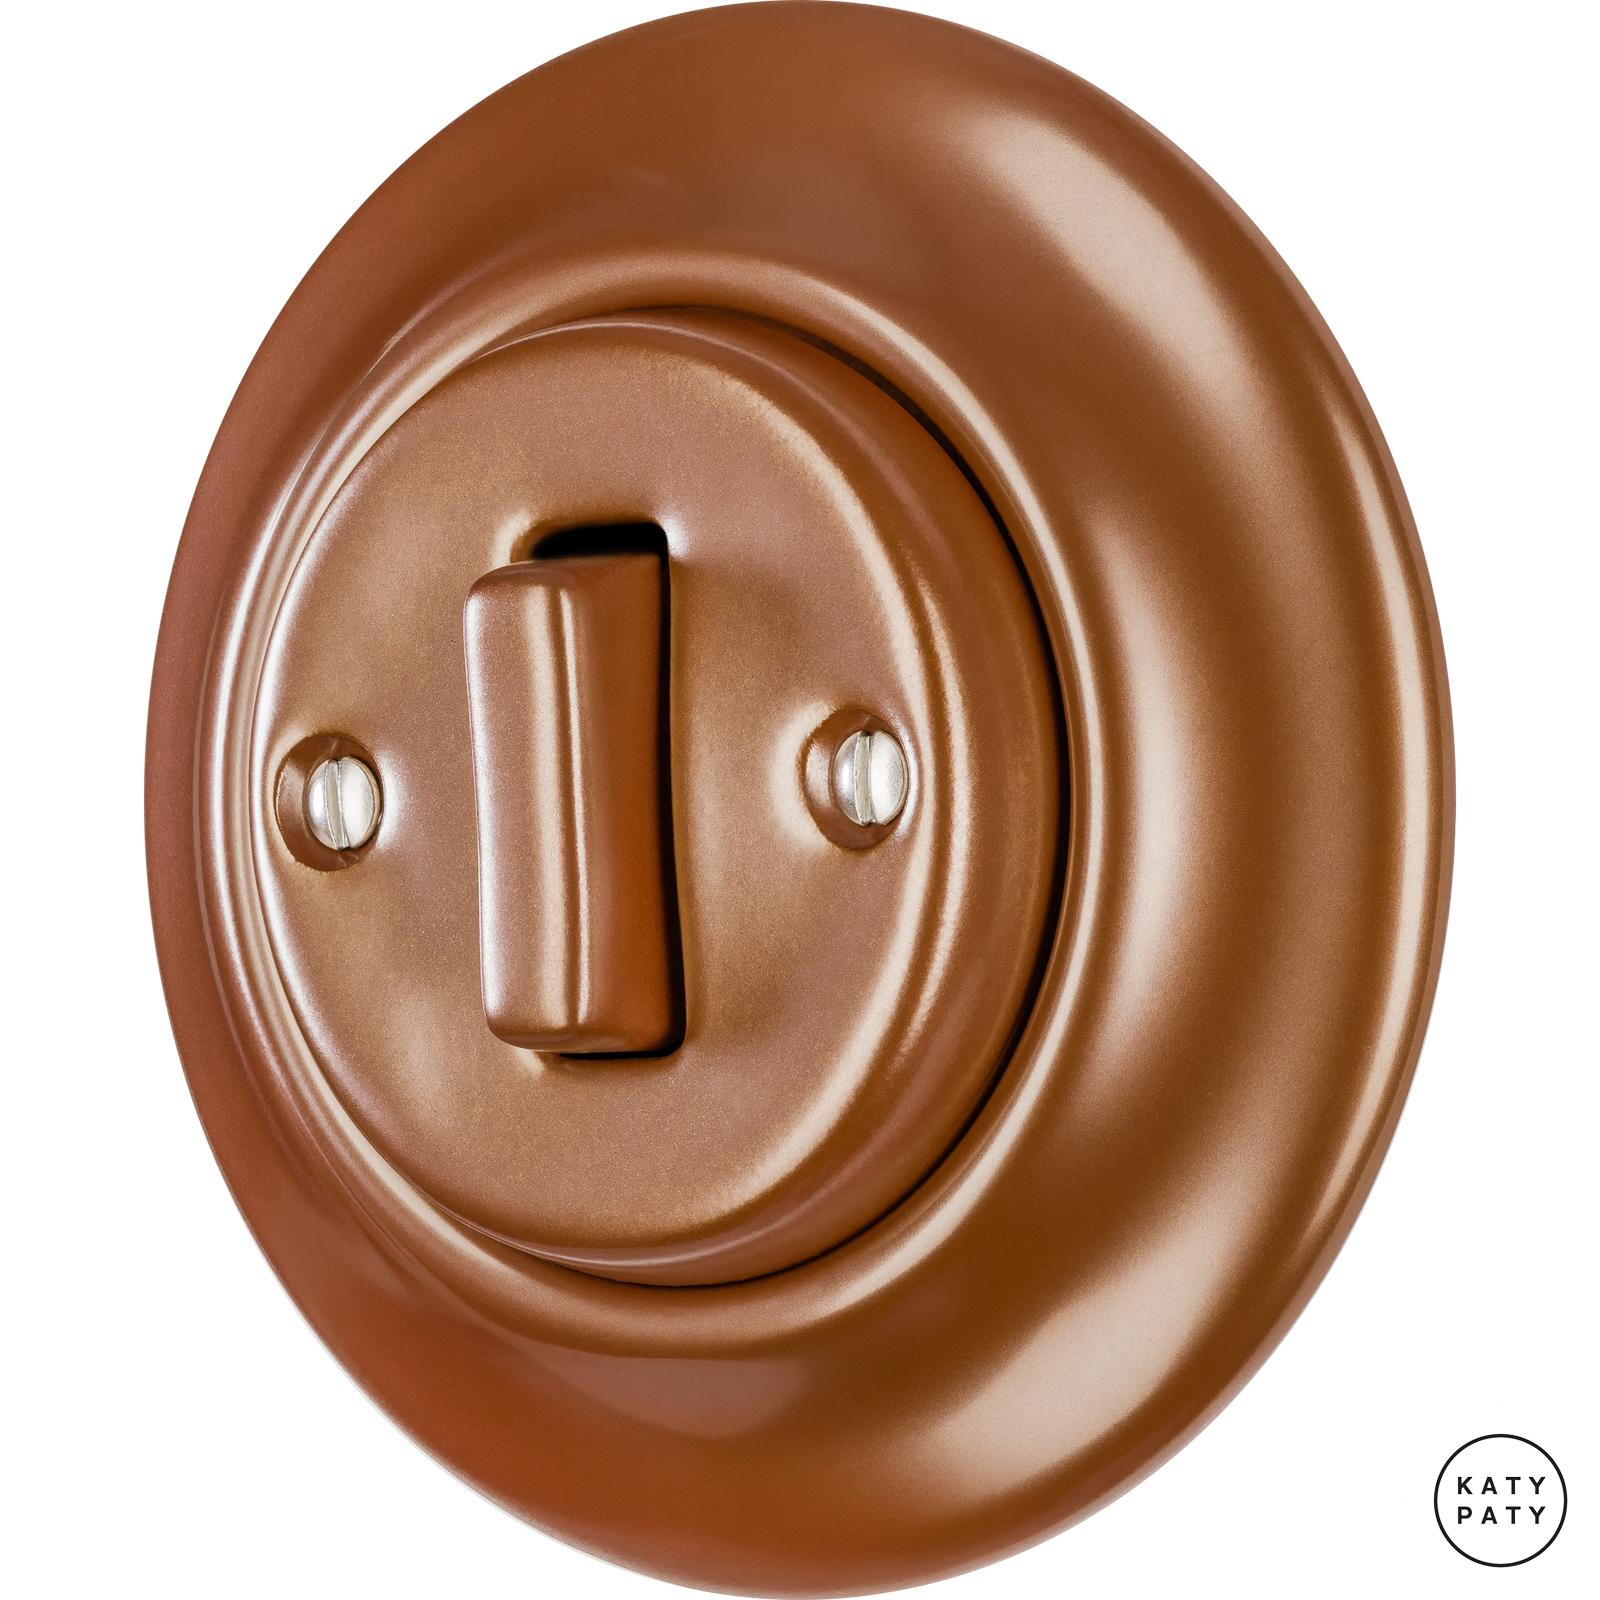 Porcelain switches - 1 gang - SLIM ()  - CUPRUM | Katy Paty